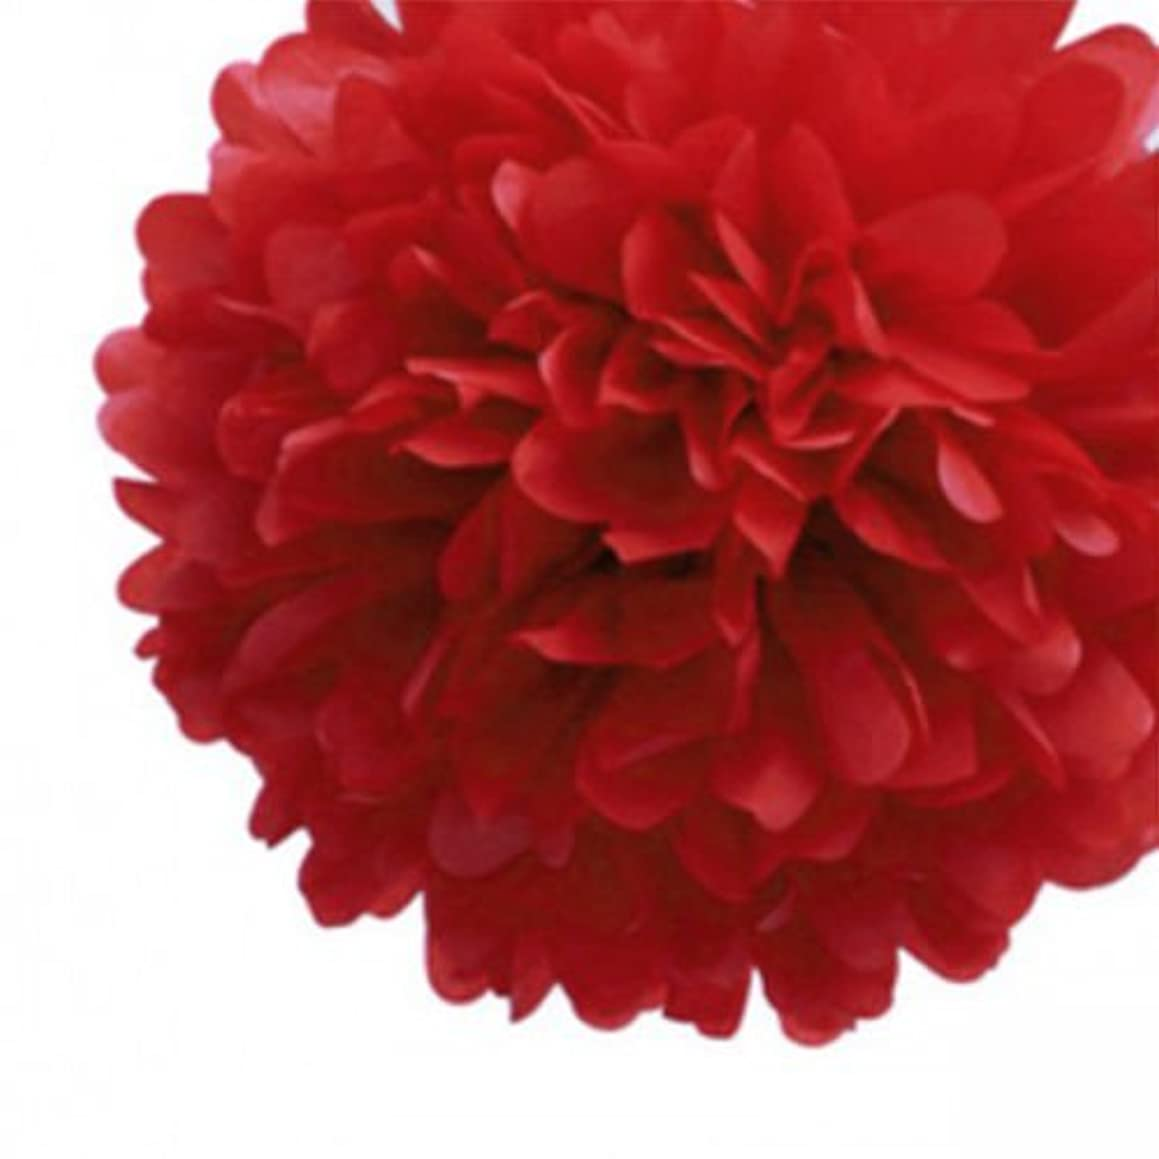 LingsFire 10 Pack 10 Inch Tissue Paper Flower Ball Pom-poms For Party/Wedding / Home/Outdoor Decoration (Red)